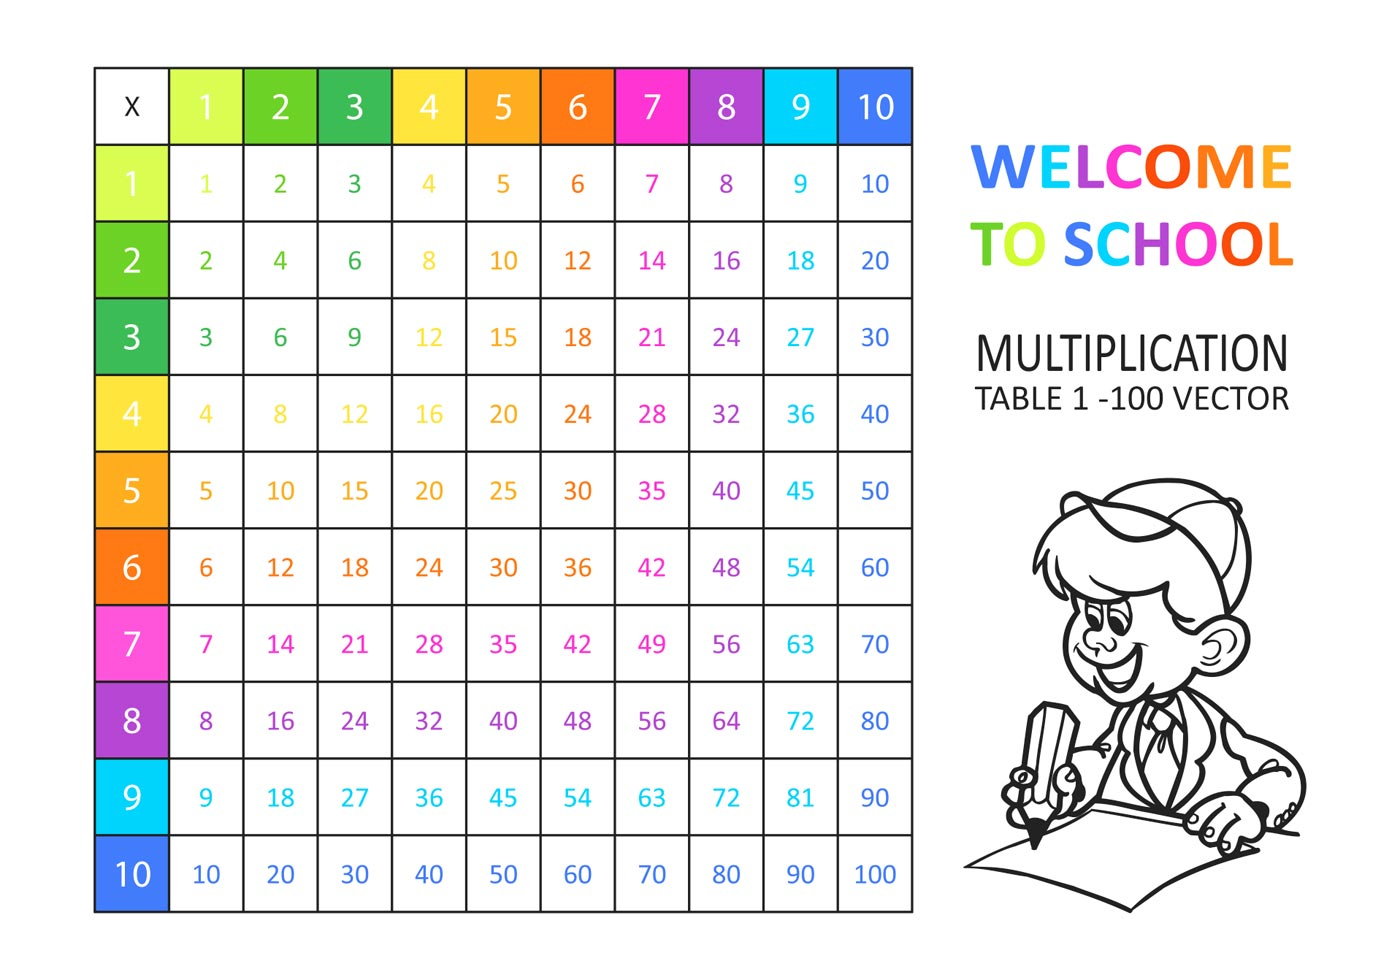 worksheet Multipication Table multiplication table vector download free art stock table